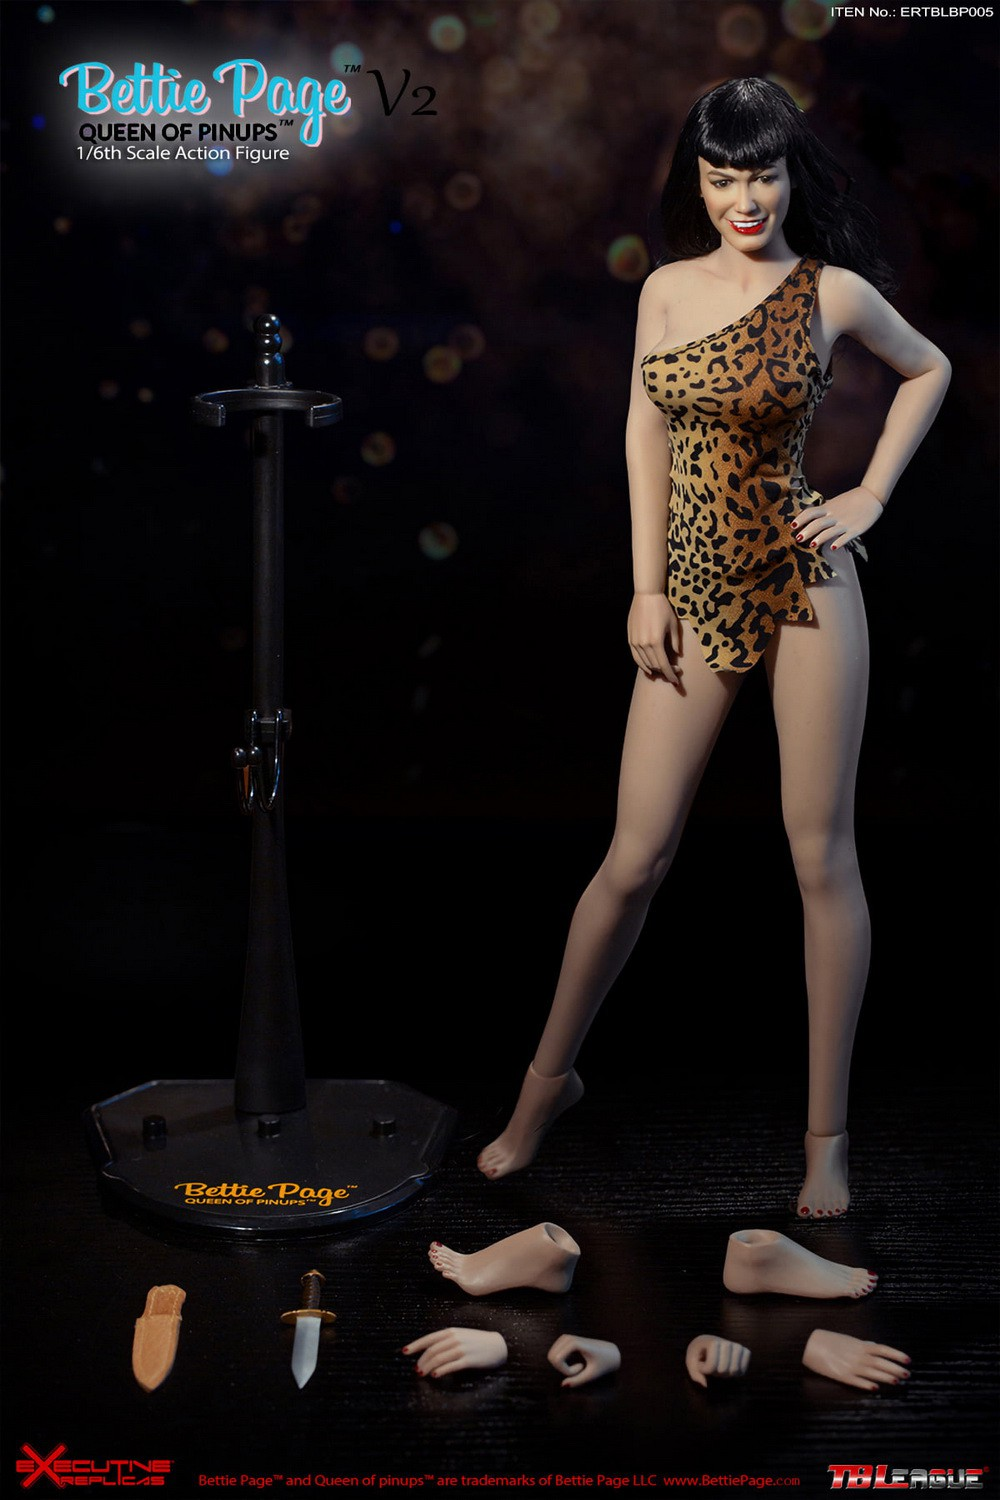 tbleague - NEW PRODUCT: Executive Replicas & TBLeague: 1/6 Queen of Pin-Ups, Betty Page/Bettie Page V2 action figure 08345610